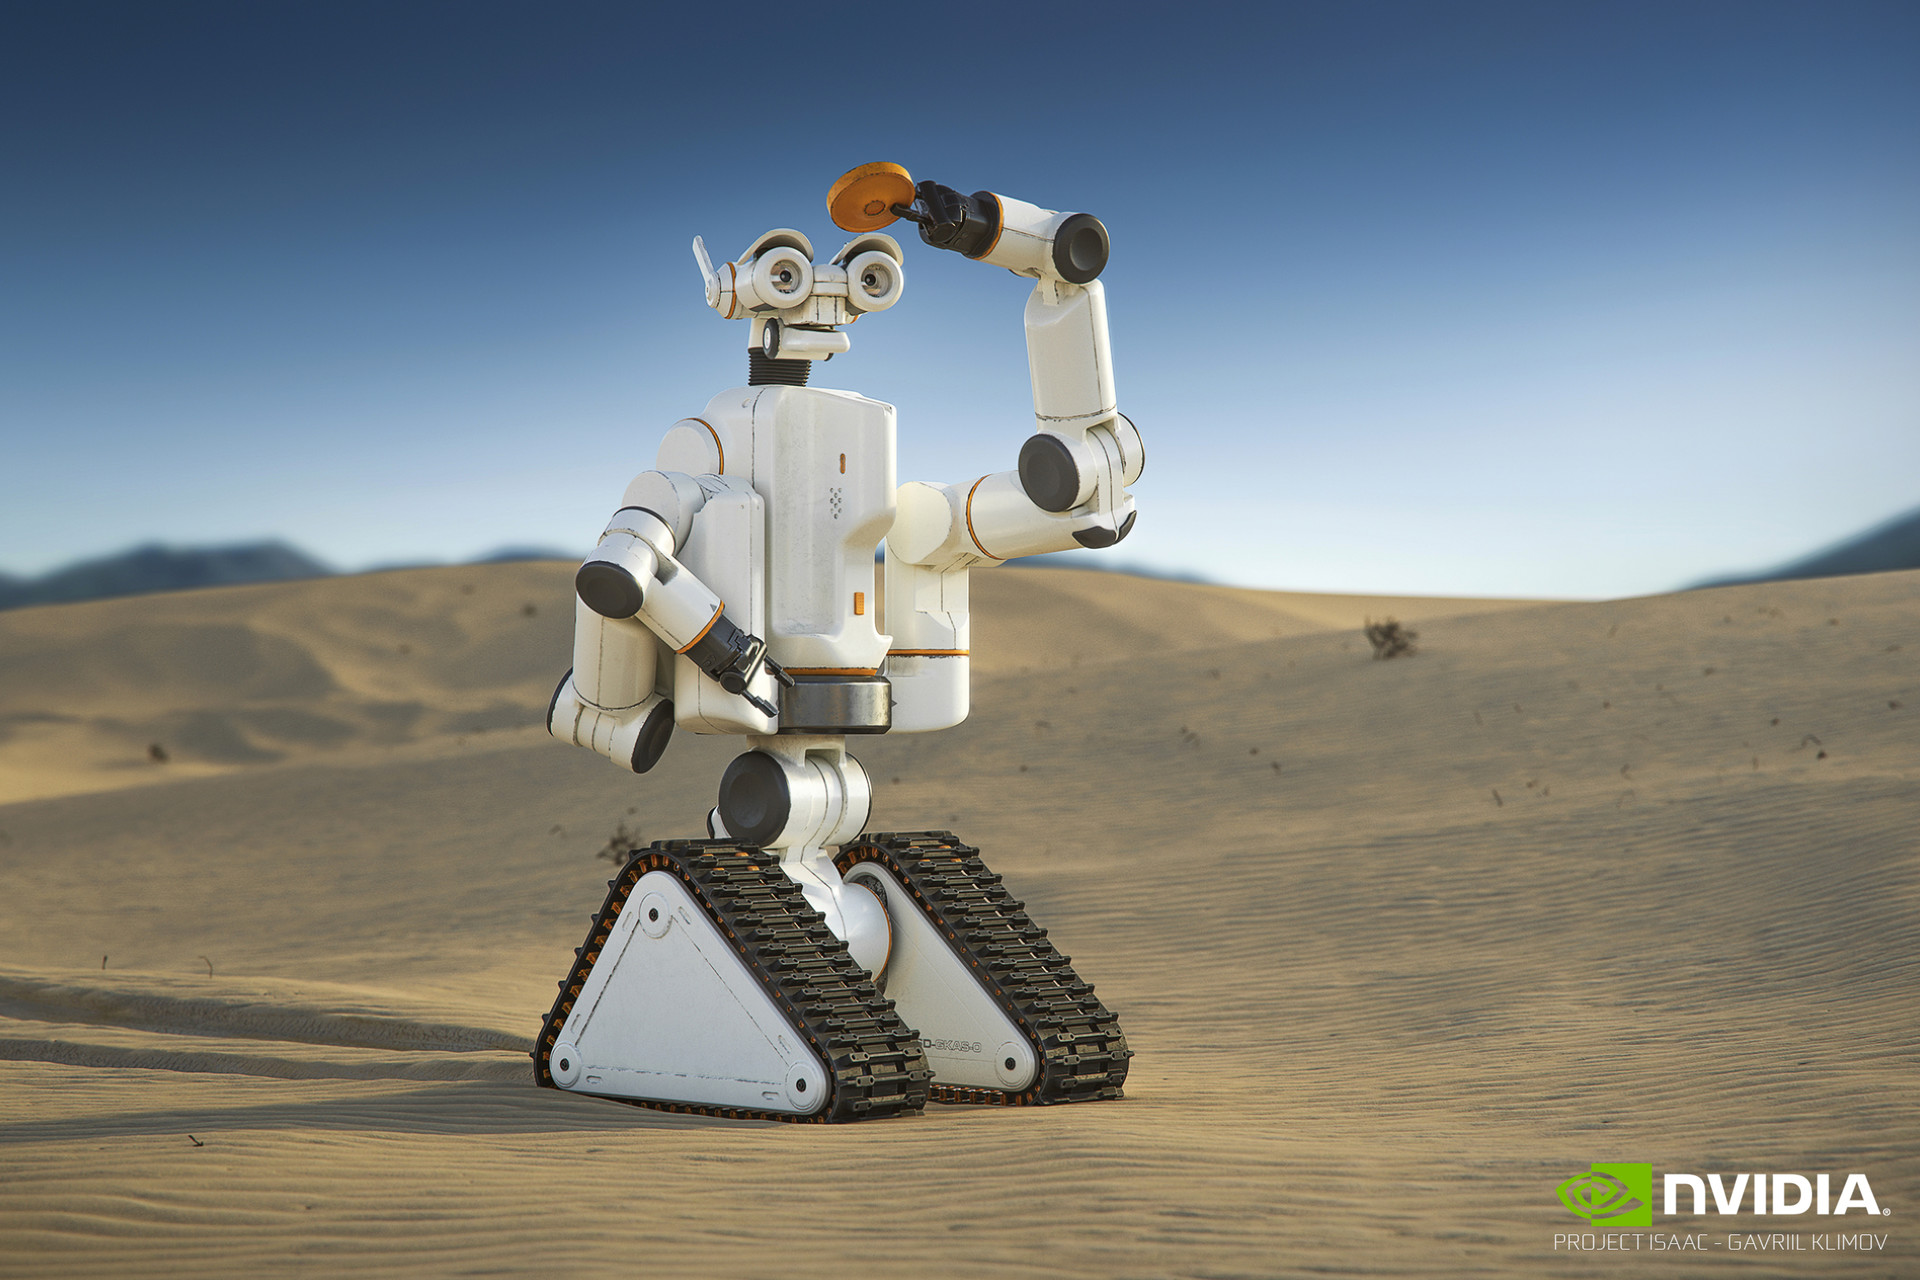 NVIDIA Isaac / Desert outdoor  When working with Jensen, he mentioned the robot I was designing should appeal as a character. Desert shots have always been appealing to me since I watched Star Wars for the first time.